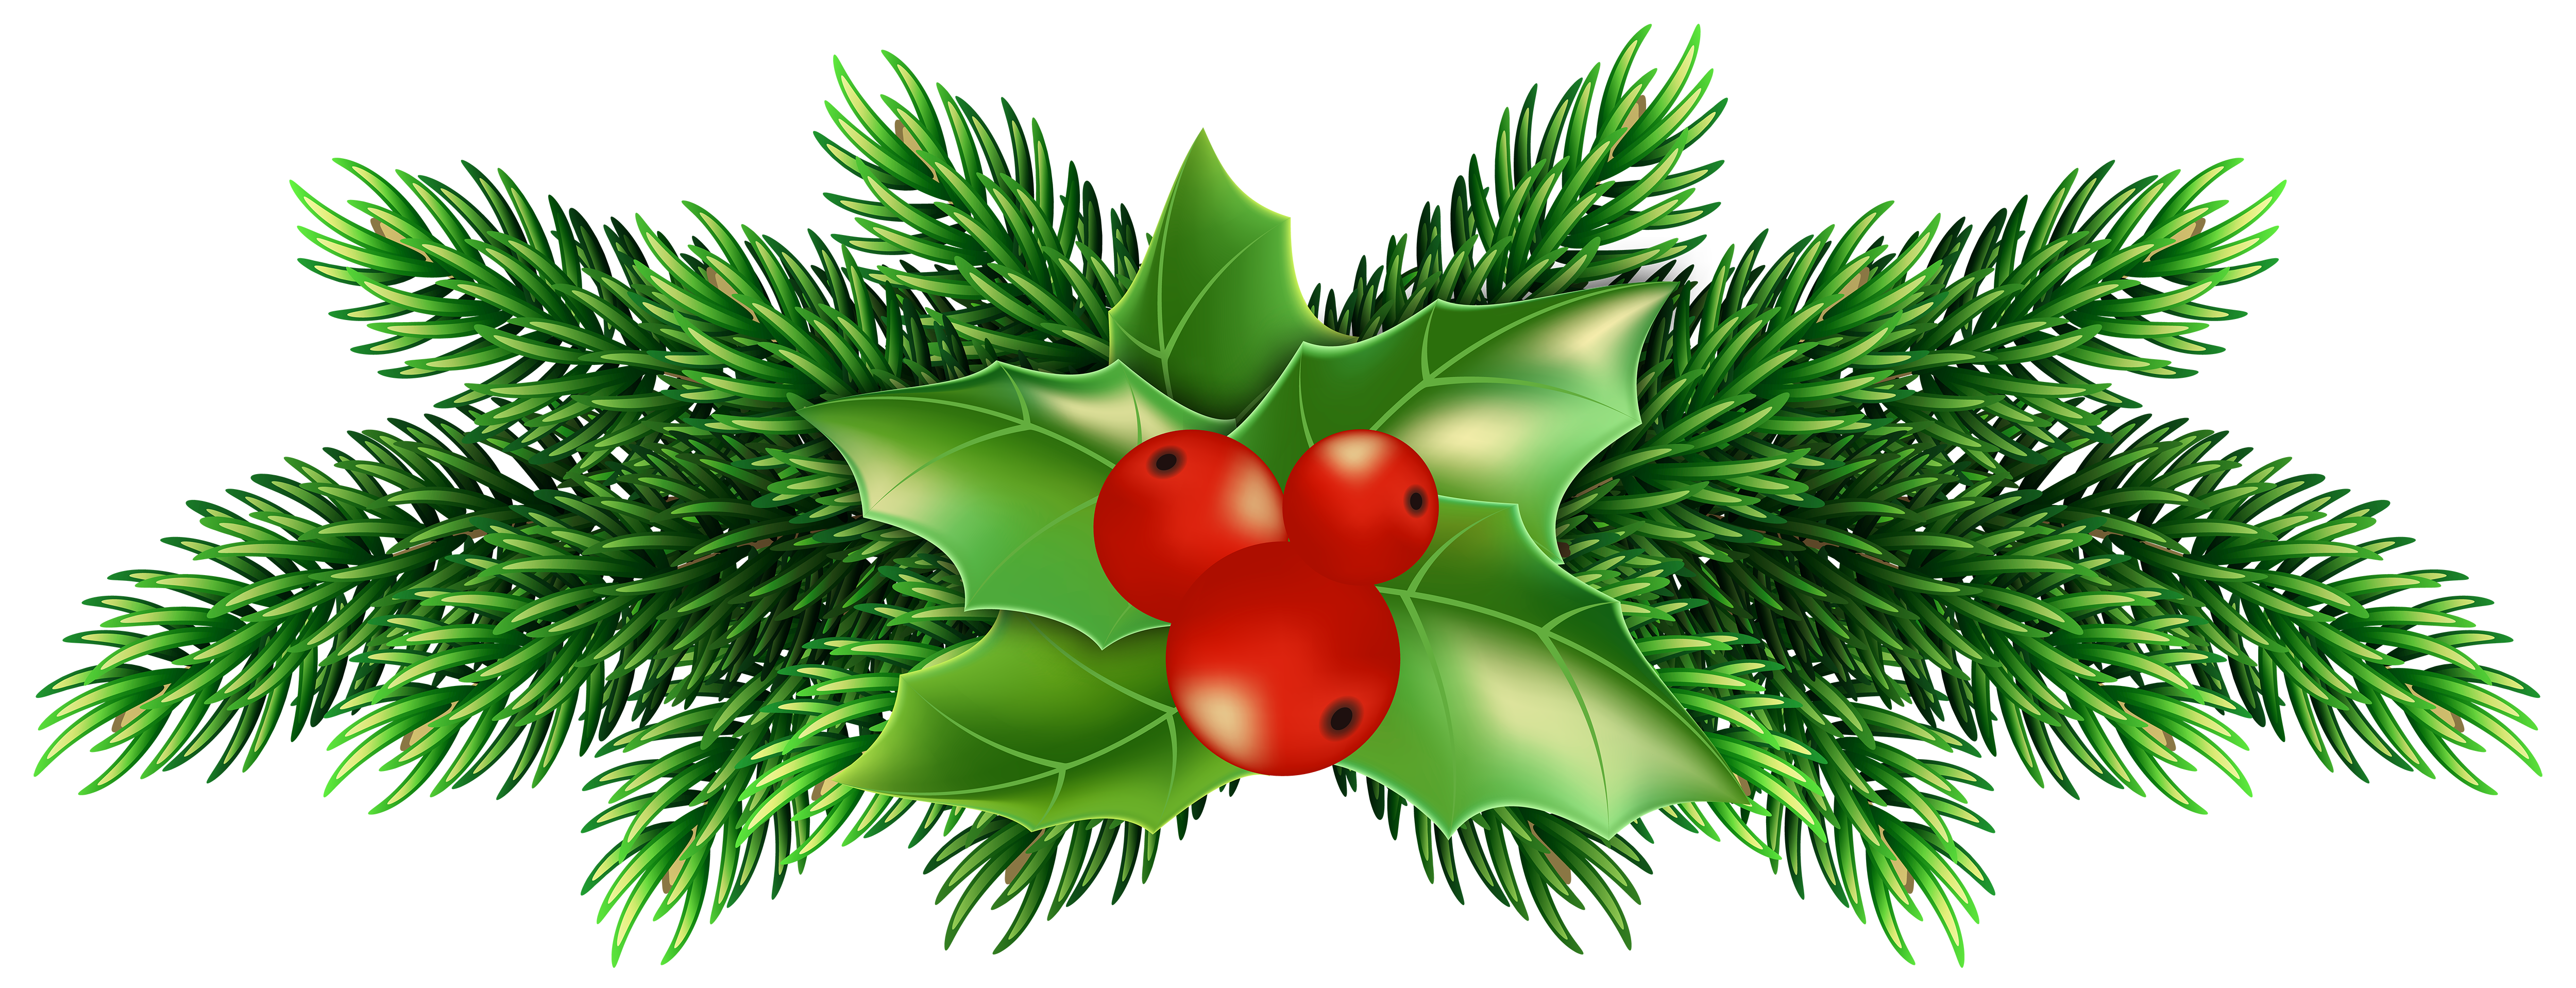 Christmas clipart holly clip free stock Christmas Holly Pine PNG Clip Art Image | Gallery Yopriceville ... clip free stock